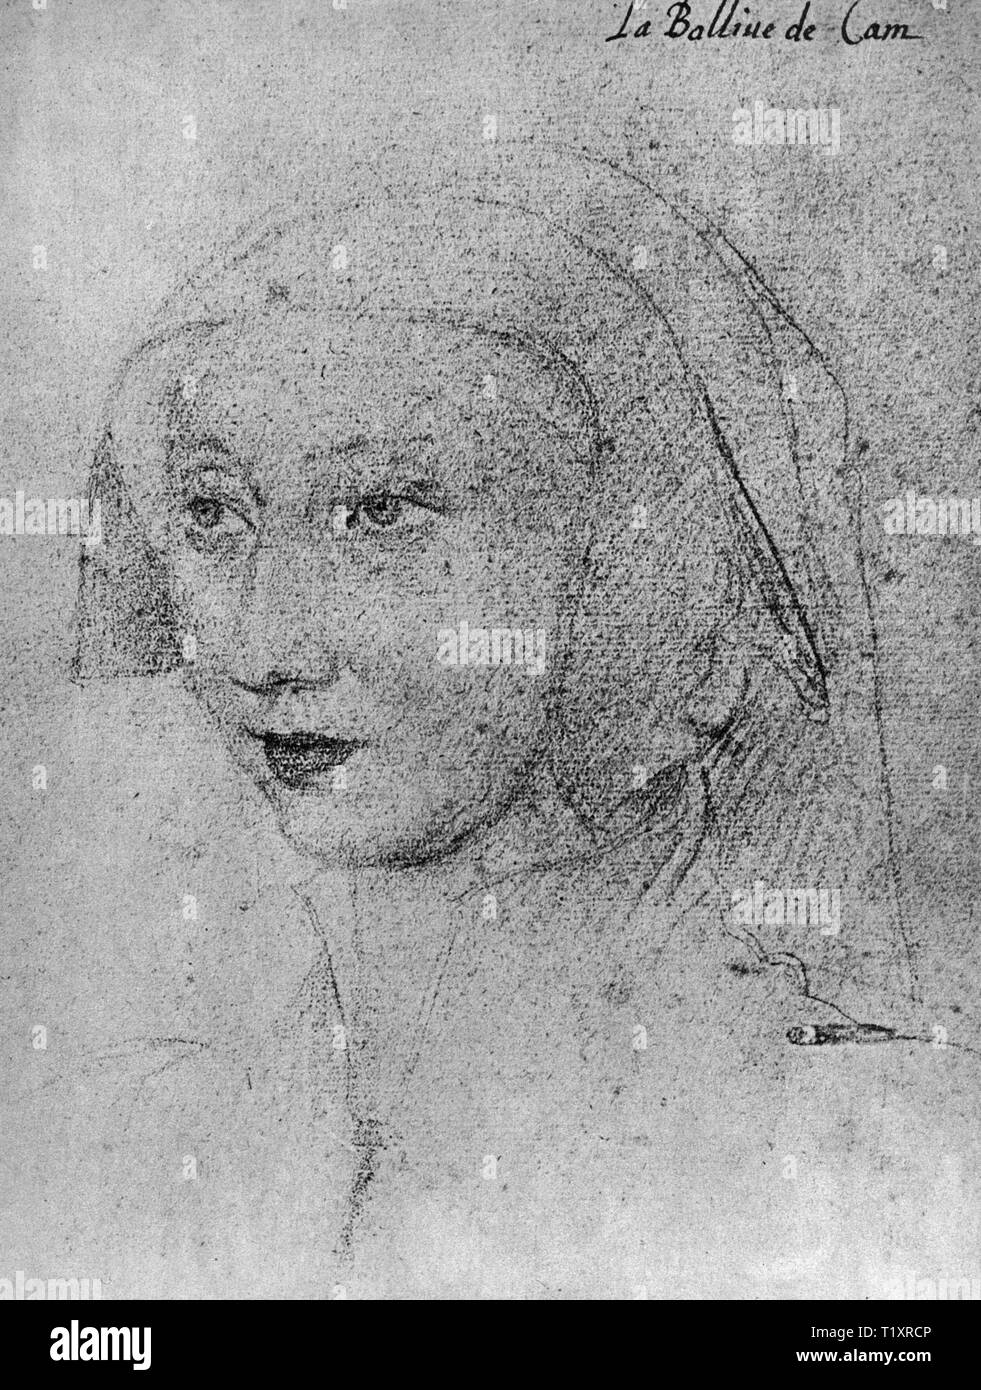 fine arts, Jean Clouet (1480 - 1541), drawing, 'La Balline de Cam', 1523, Additional-Rights-Clearance-Info-Not-Available - Stock Image